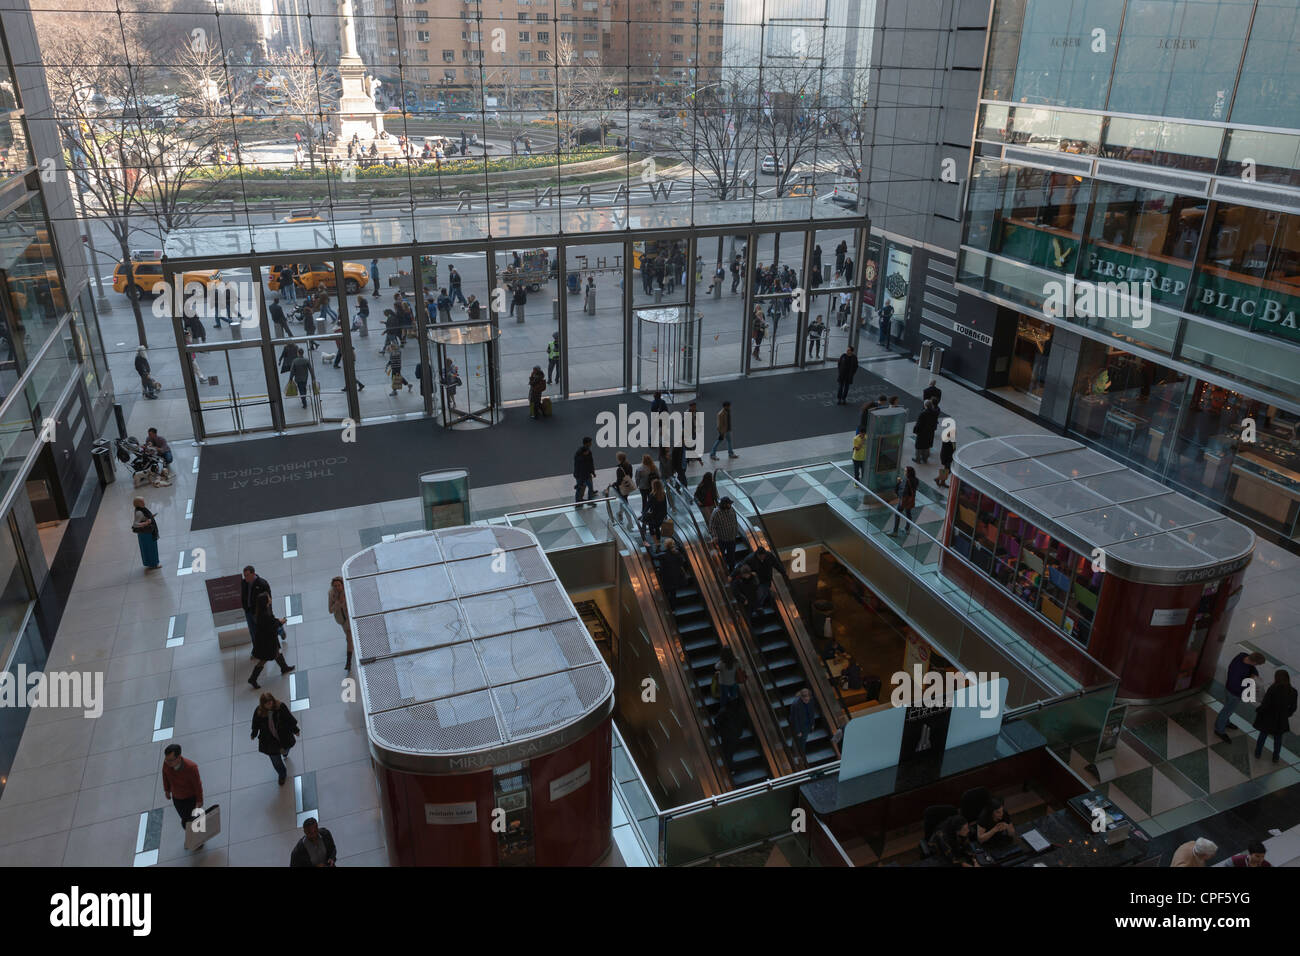 A view inside the atrium of the of the Time Warner Center, with Columbus Circle in the background, in New York City. Stock Photo